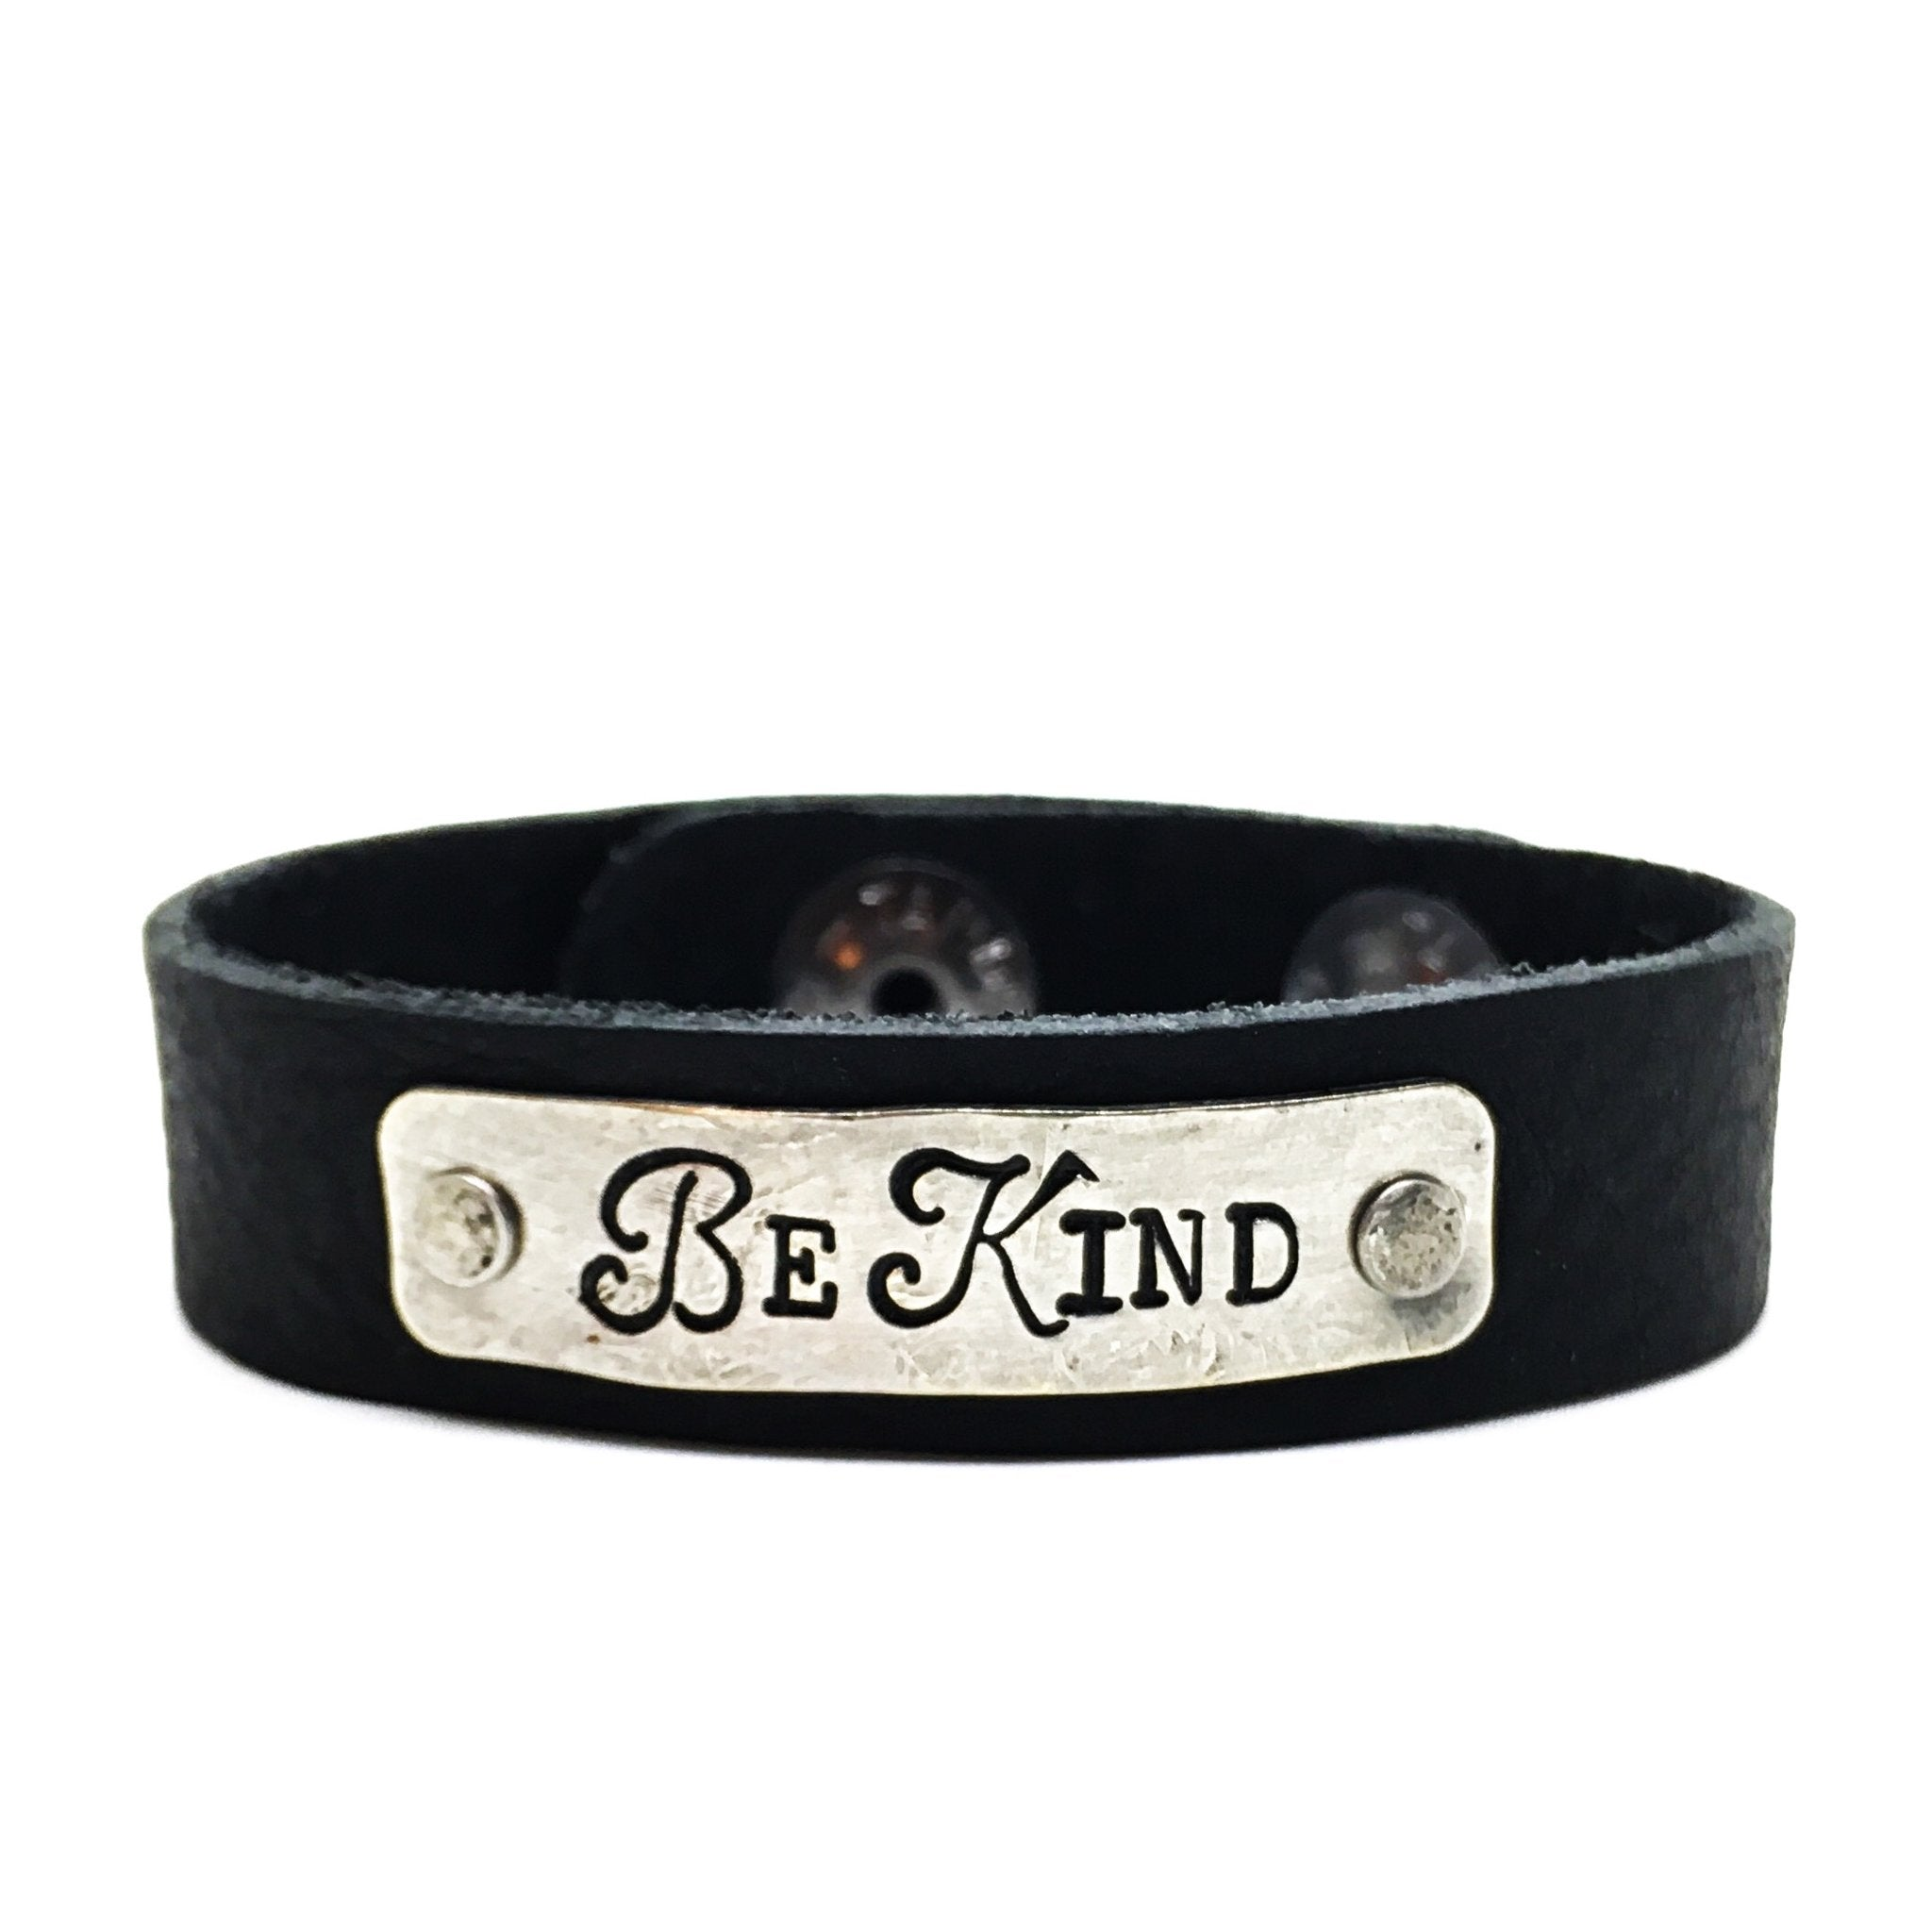 Buffalo Girls Salvage - Be Kind Skinny Bracelet